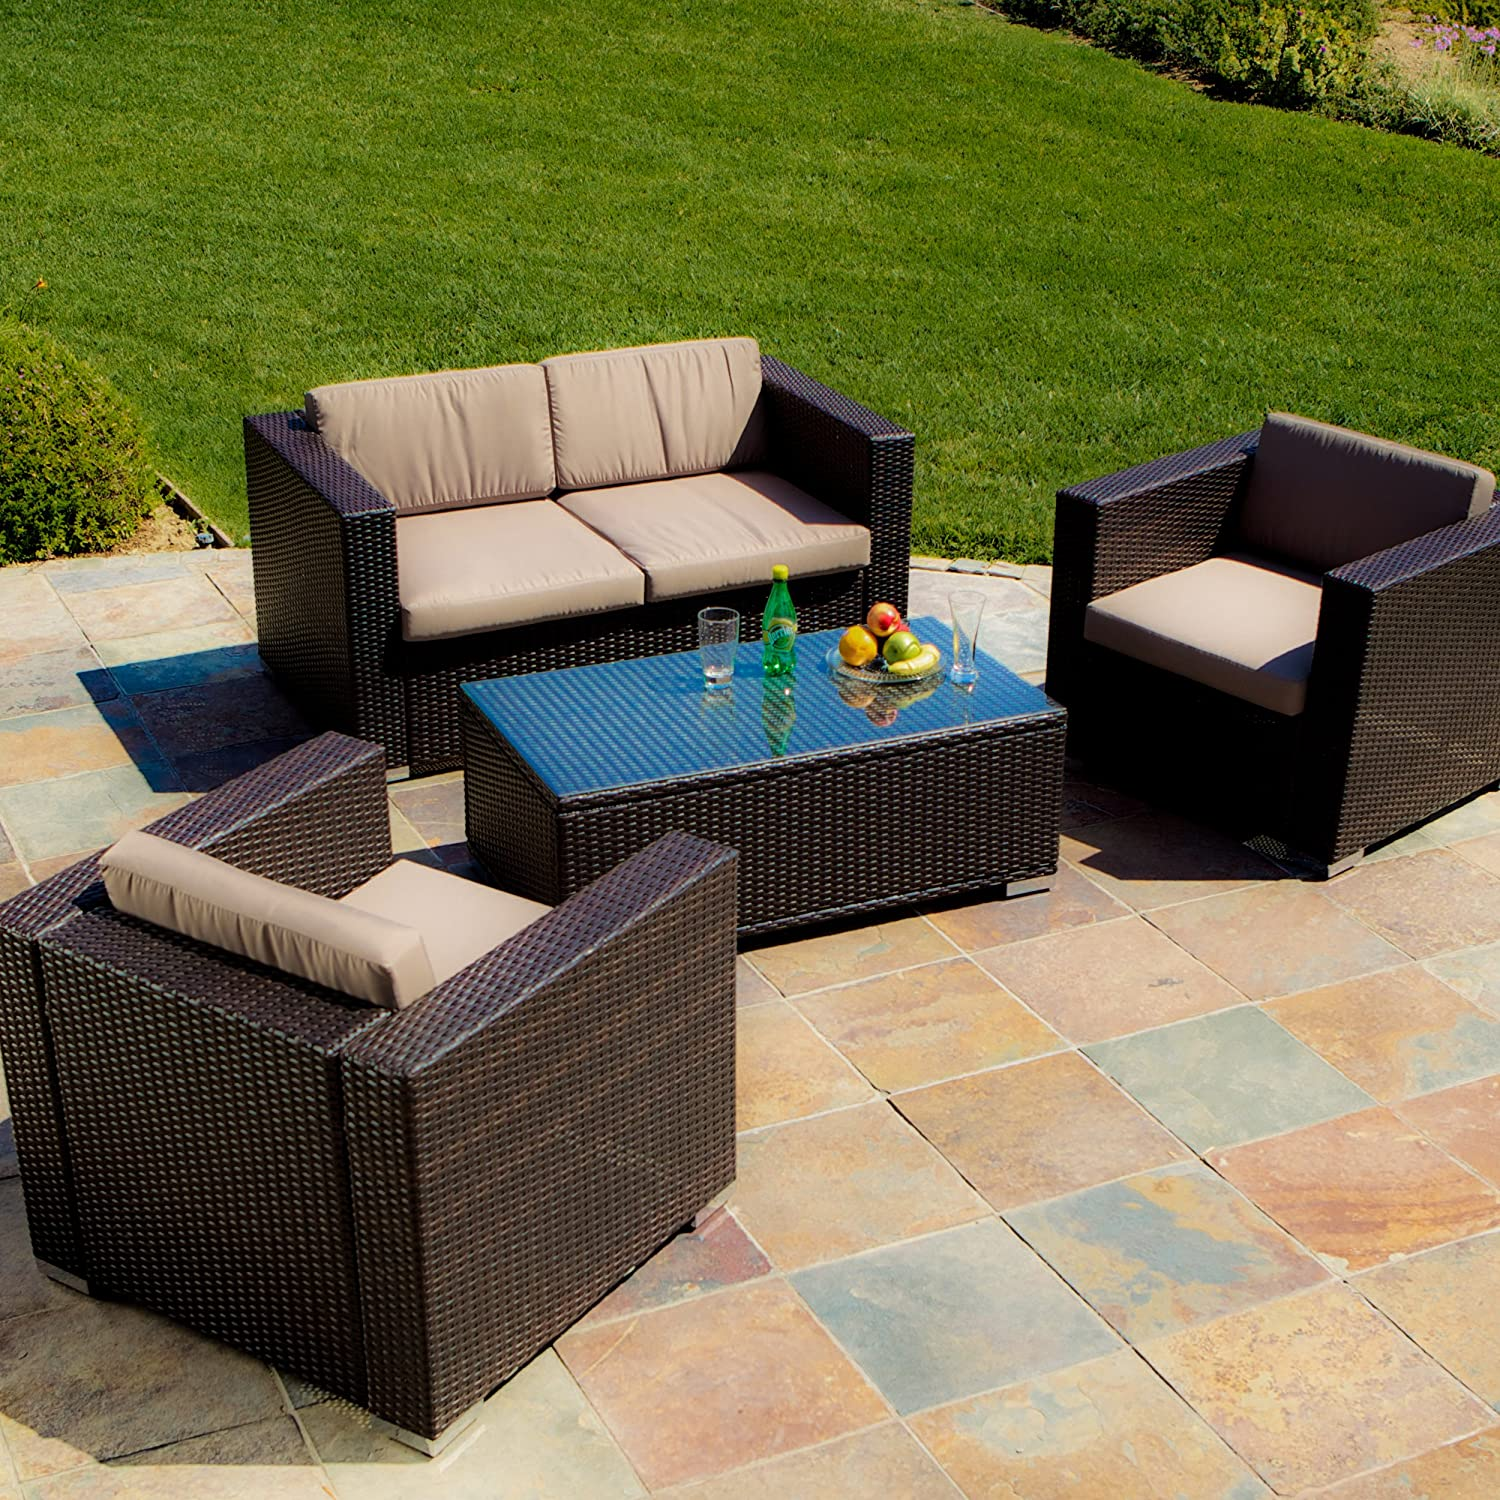 Amazon Best Selling Venice PE Wicker 4 Piece Outdoor Sofa